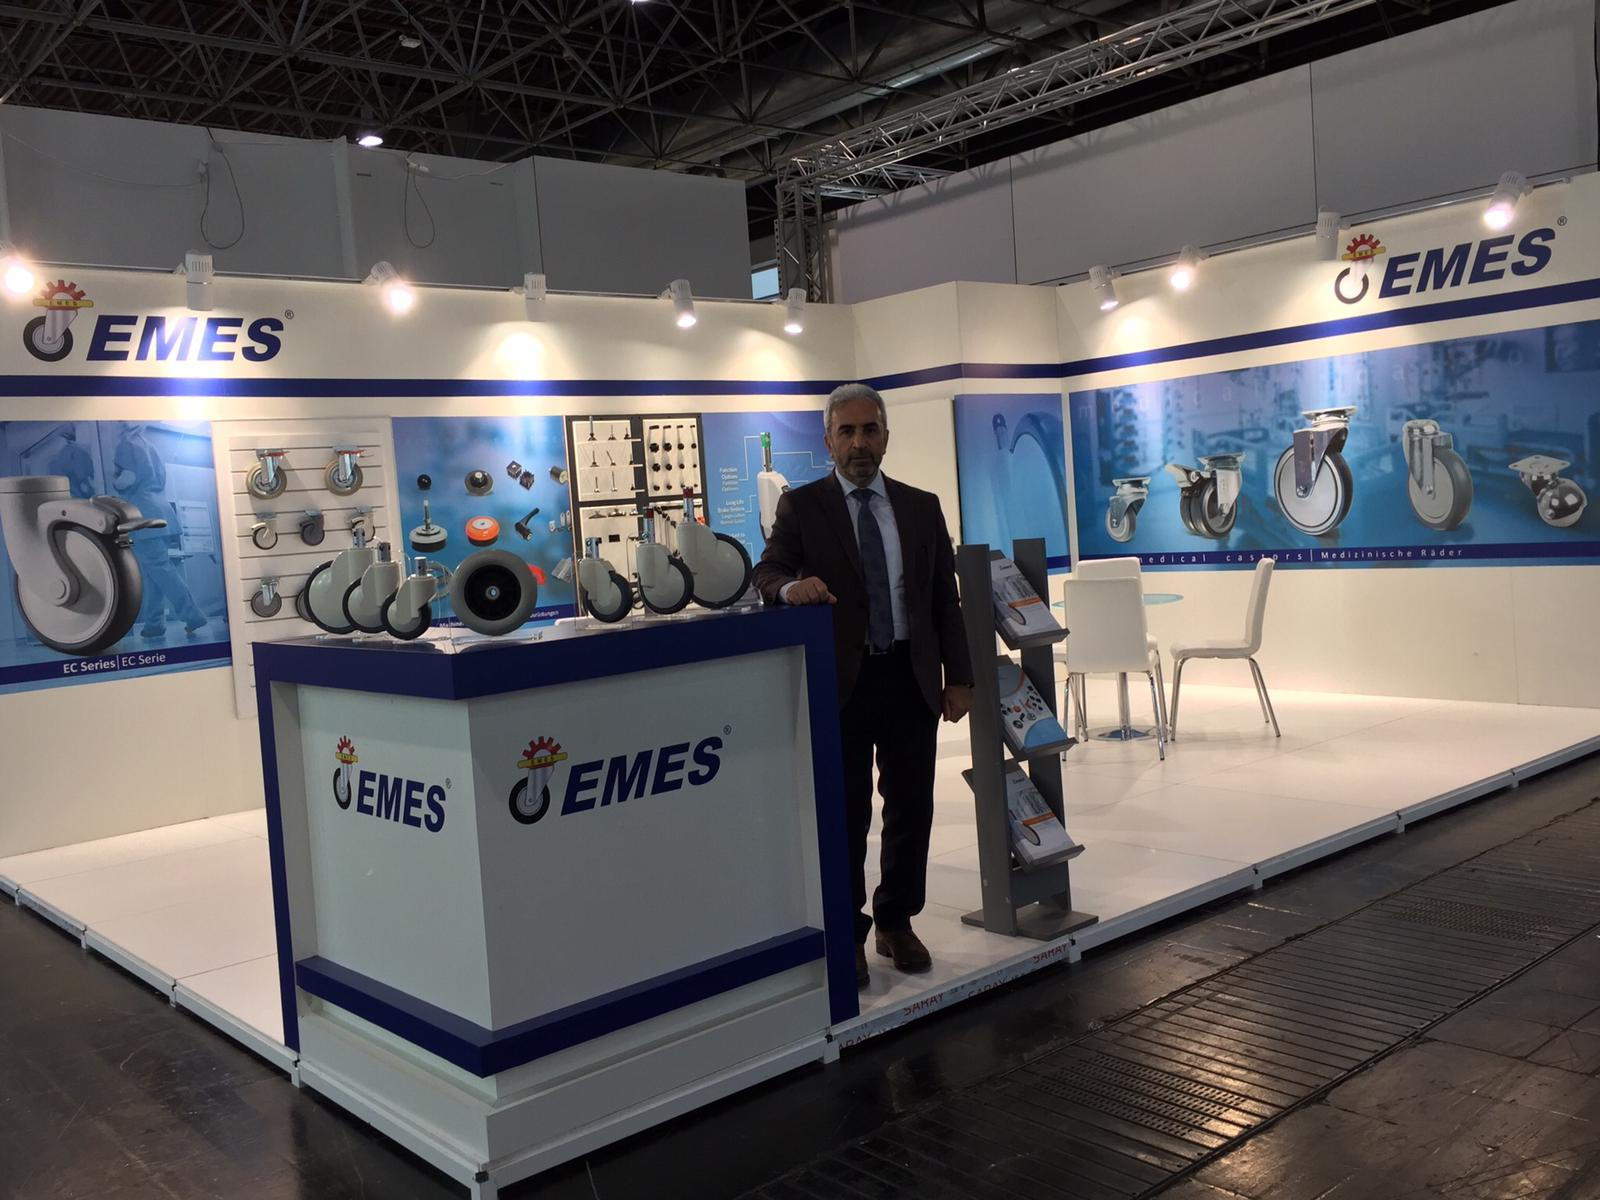 <a href='application-detail/187'>CLICK HERE - MEDICA DUSSELDORF GERMANY 2019 EMES STAND   SHOW MORE<a/>